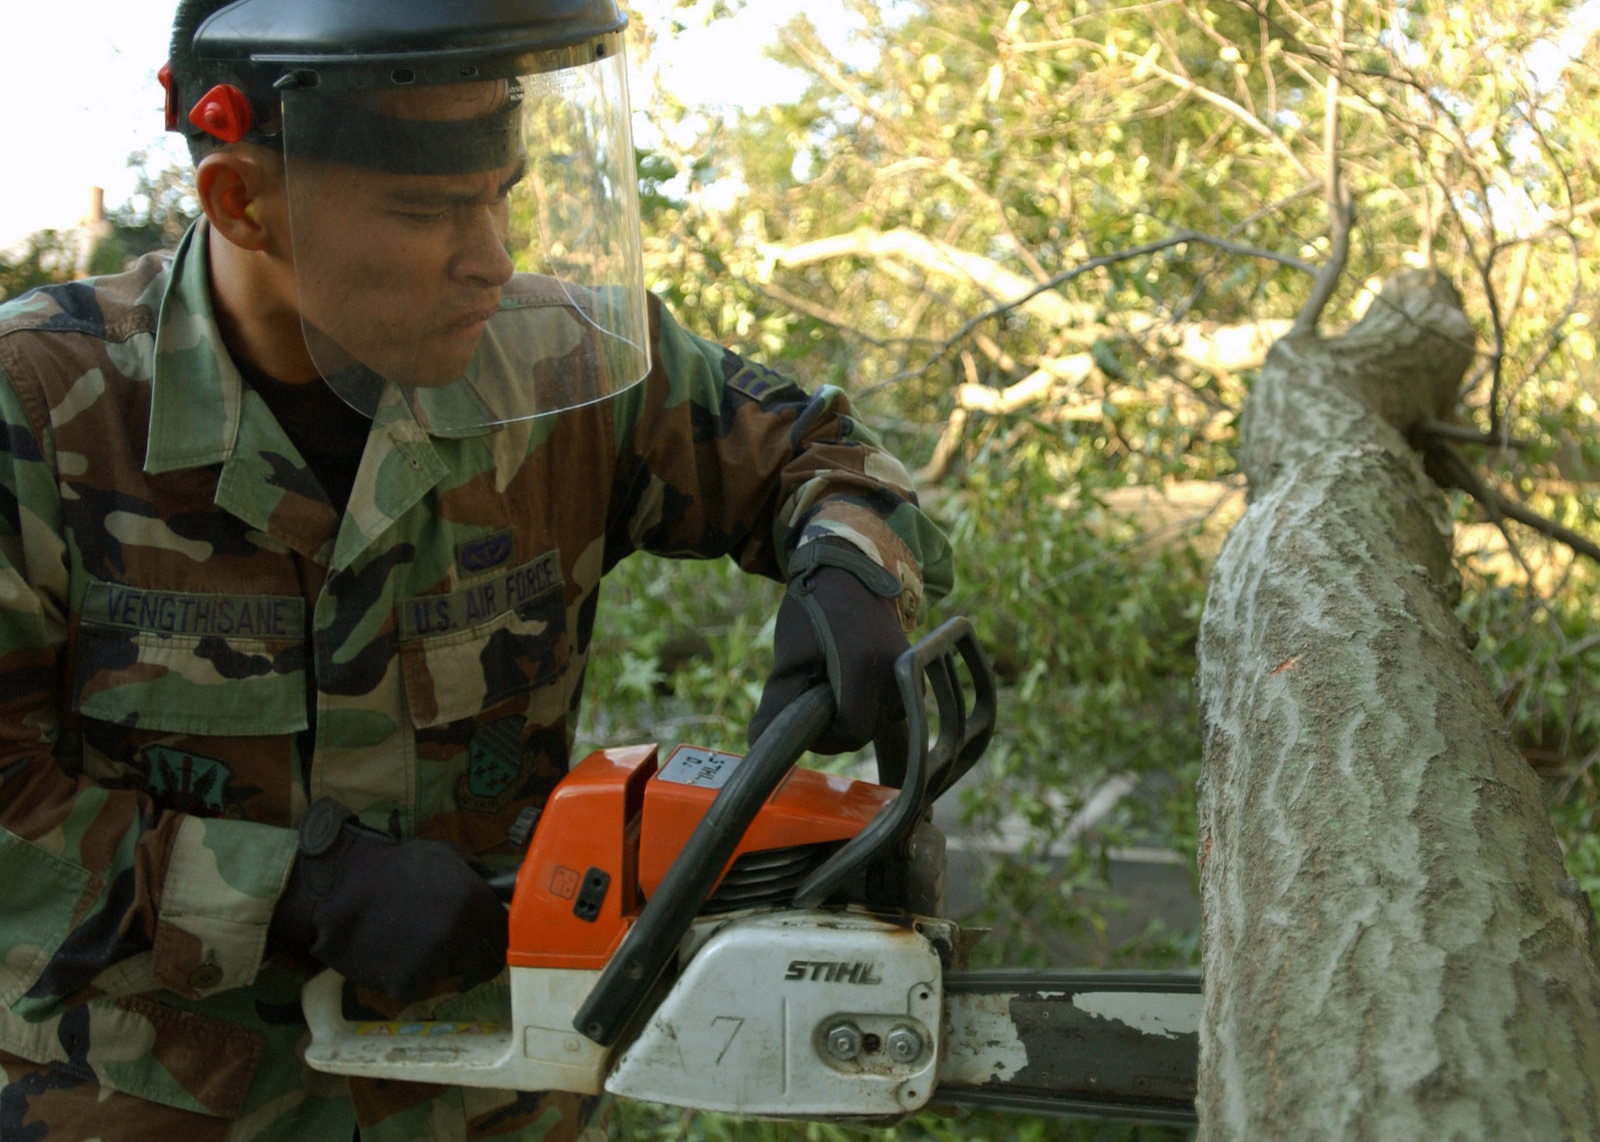 US Air Force (USAF) AIRMAN First Class (A1C) Bee Vengthisane, 1ST Civil Engineer Squadron (CES), uses a chainsaw to cut and clear one of the large number of trees that fell on houses and streets as Hurricane Isabel swept through Langley Air Force Base (AFB), Virginia (VA)